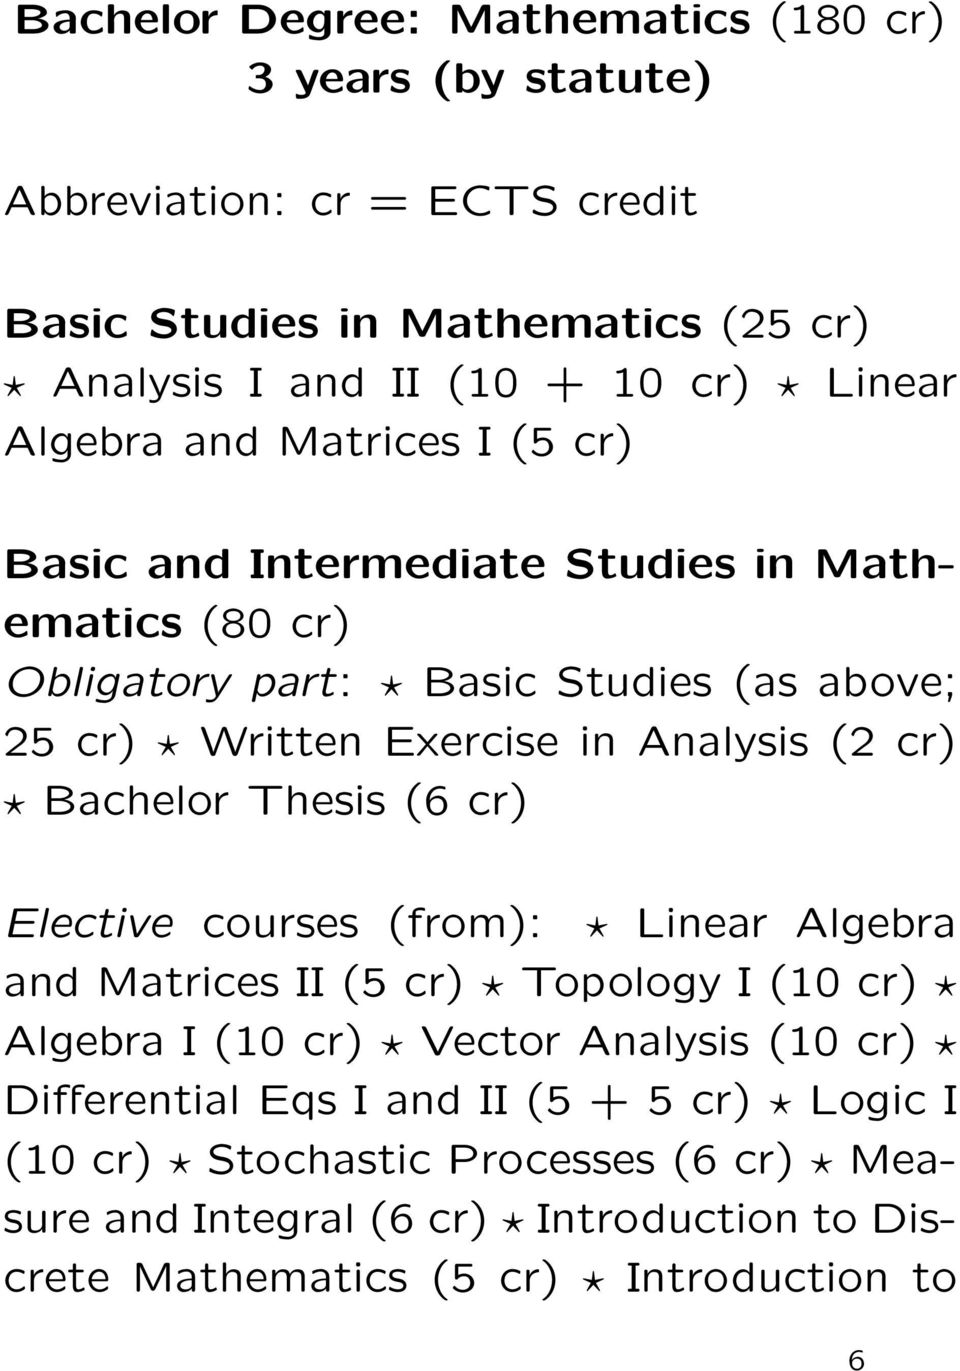 Analysis (2 cr) Bachelor Thesis (6 cr) Elective courses (from): Linear Algebra and Matrices II (5 cr) Topology I (10 cr) Algebra I (10 cr) Vector Analysis (10 cr)